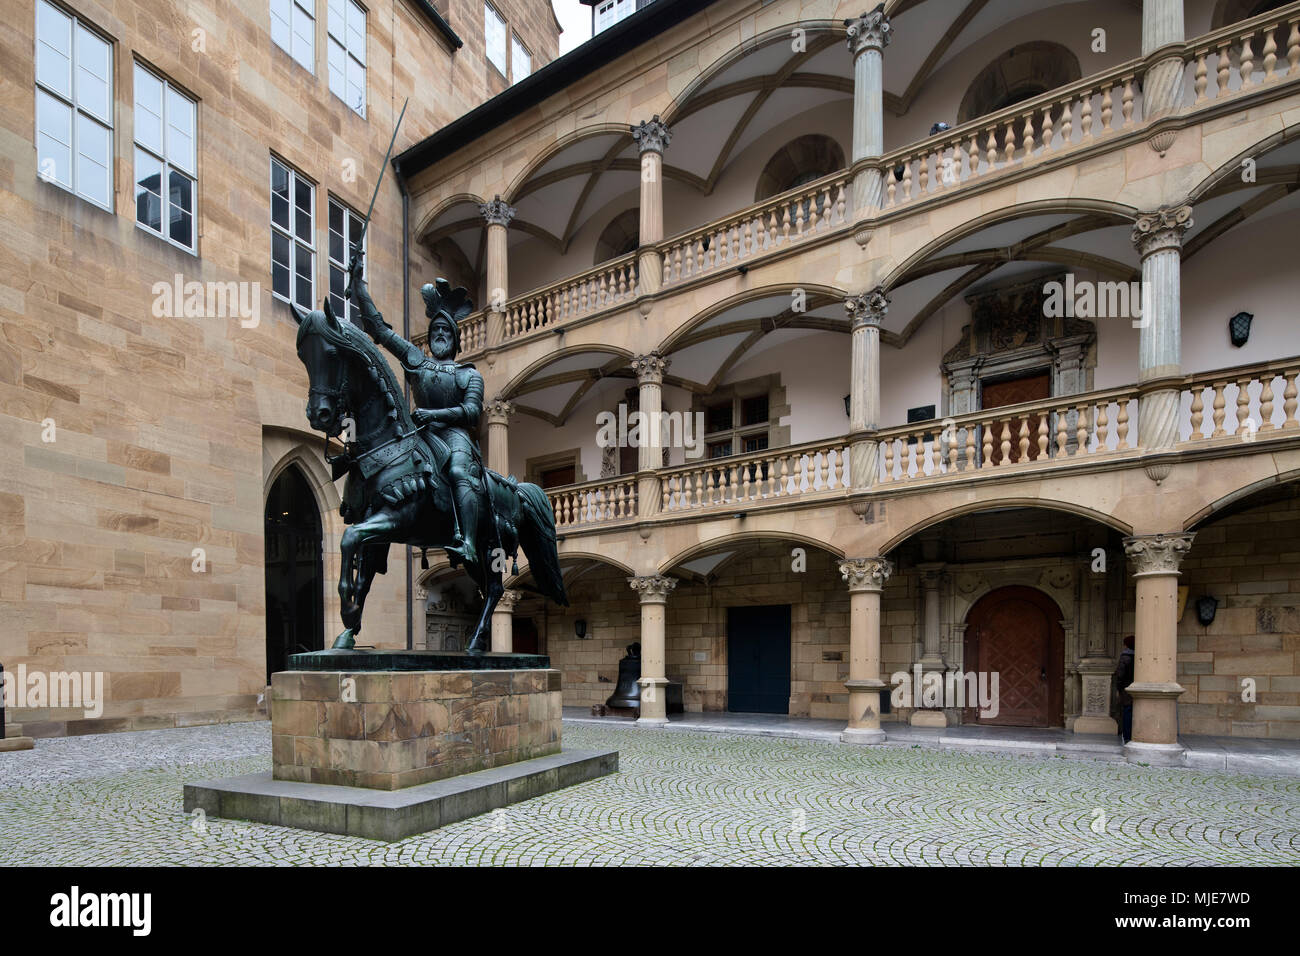 Equestrian statue Graf Eberhard im Bart in the inner courtyard of the old castle, Stuttgart, Baden-Wurttemberg, Germany - Stock Image